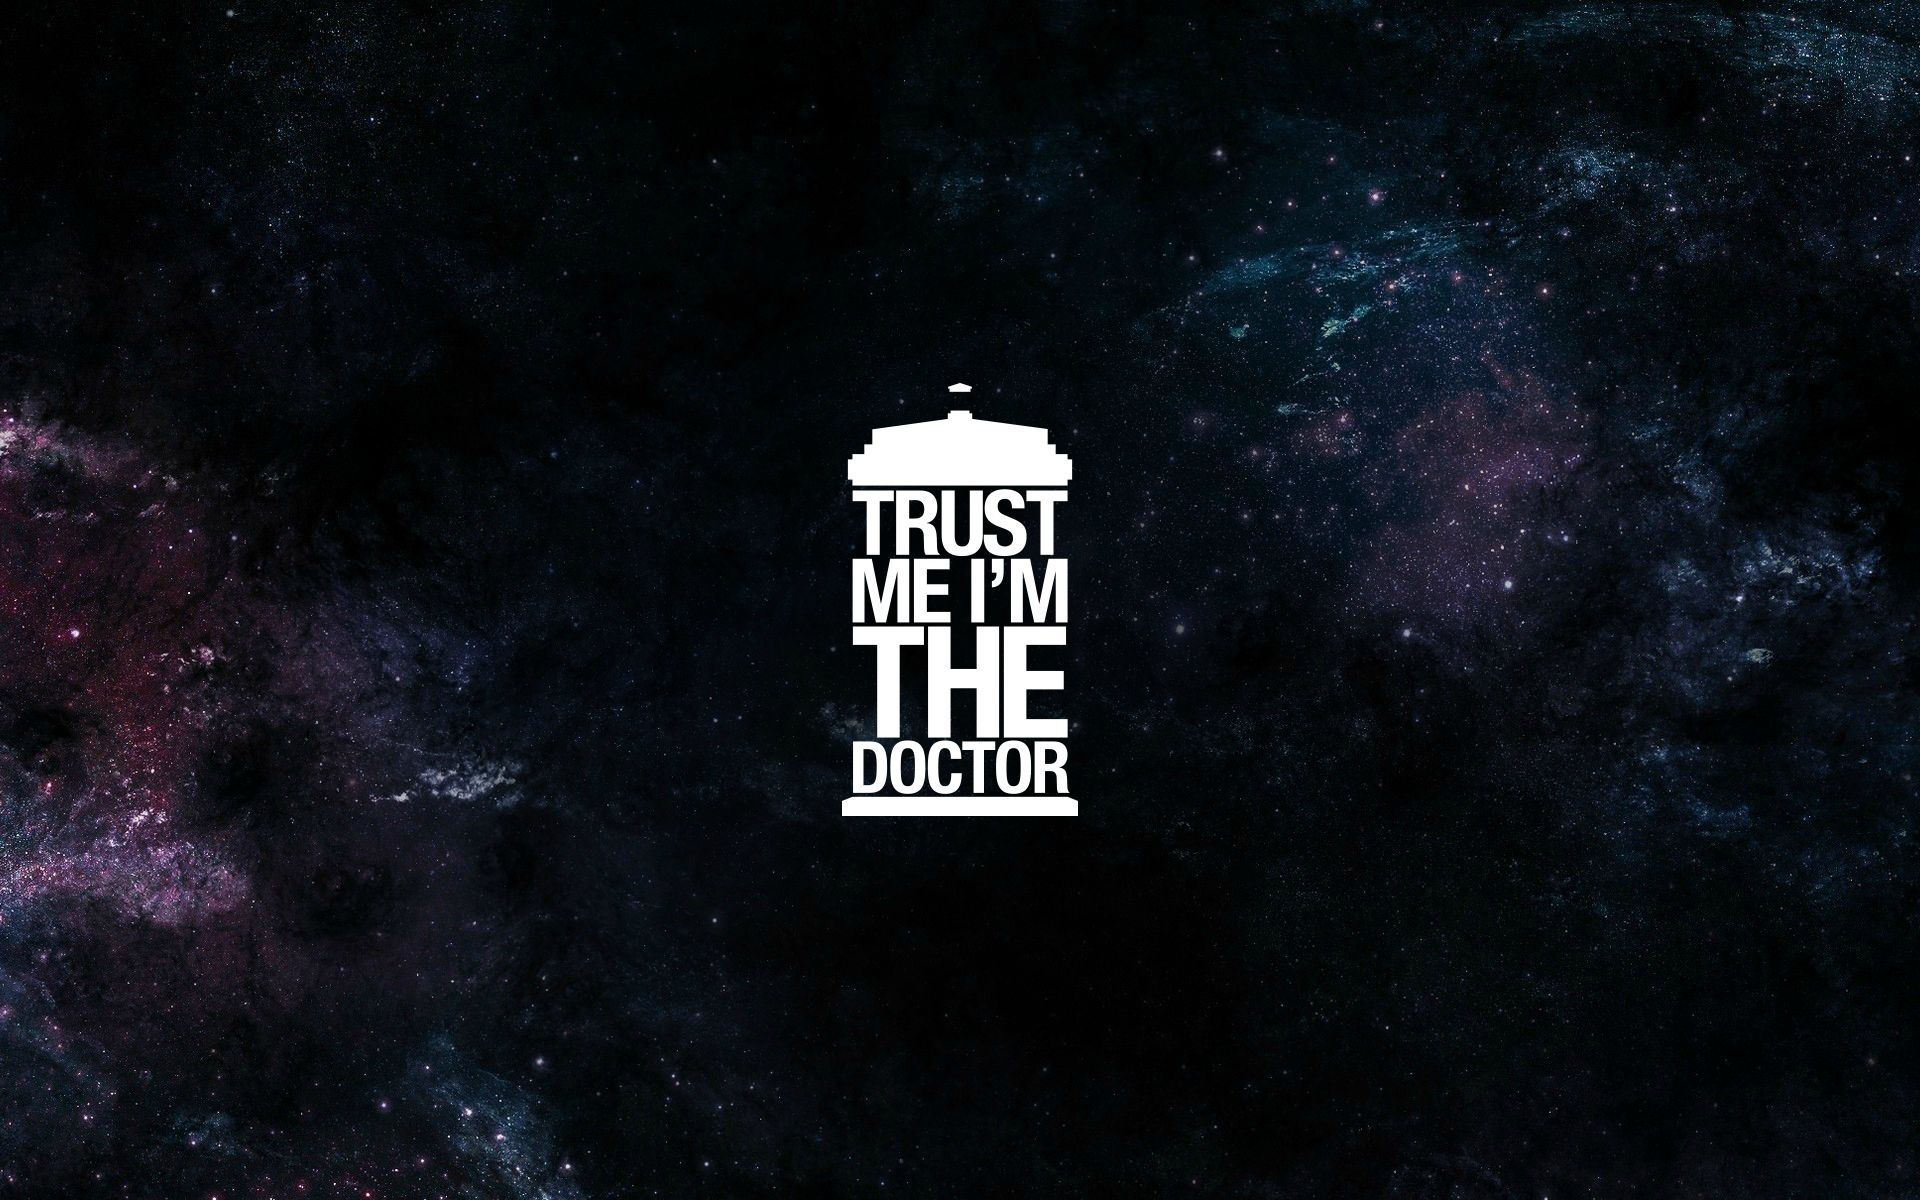 Doctor who wallpapers HD A7 - Doctor who backgrounds | doctor who tardis wallpapers | Dr Who | Doctor who desktop wallpapers | doctor who phone wallpapers.